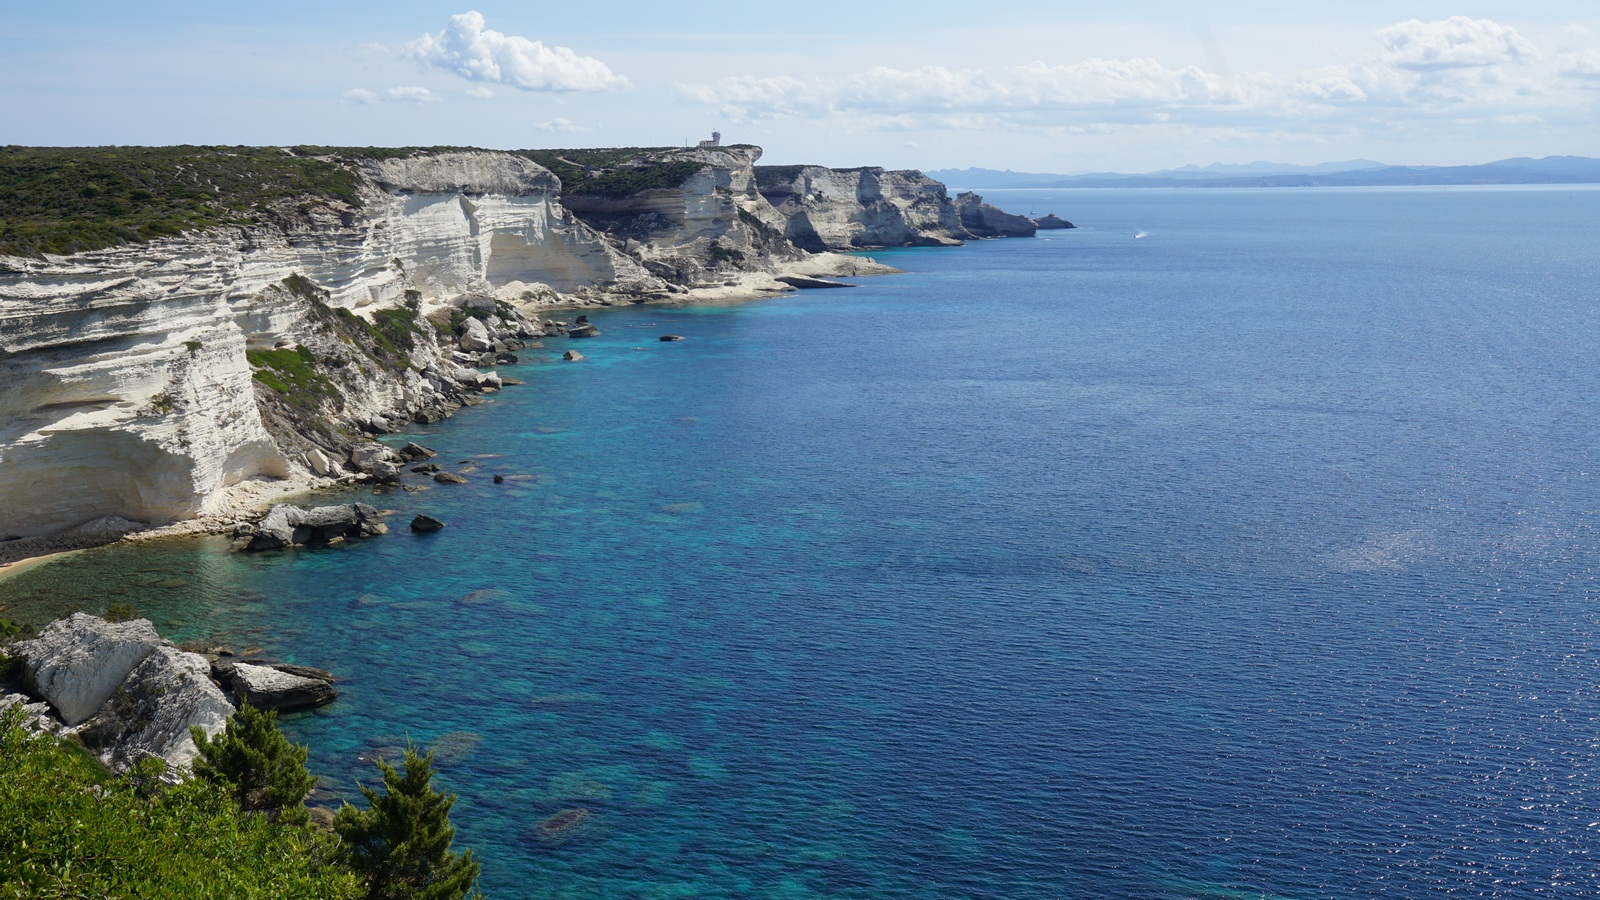 Cliffs east of Bonifacio